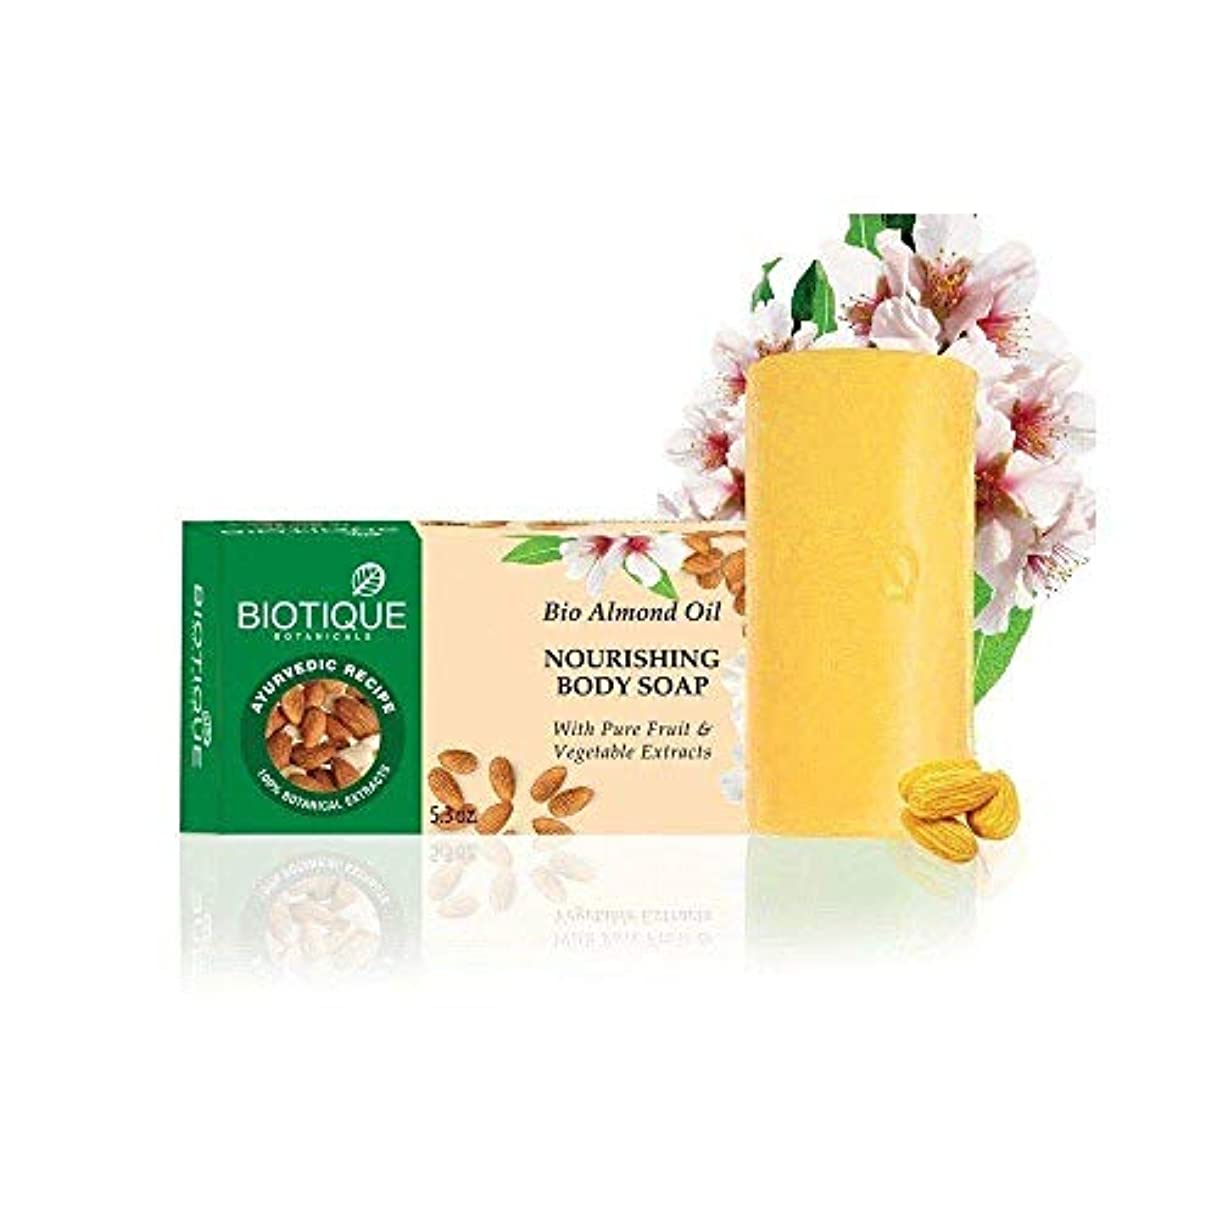 ブルジョン許可検出するBiotique Bio Almond Oil Nourishing Body Soap - 150g (Pack of 2) wash Impurities Biotique Bio Almond Oilナリッシングボディソープ - 洗浄不純物